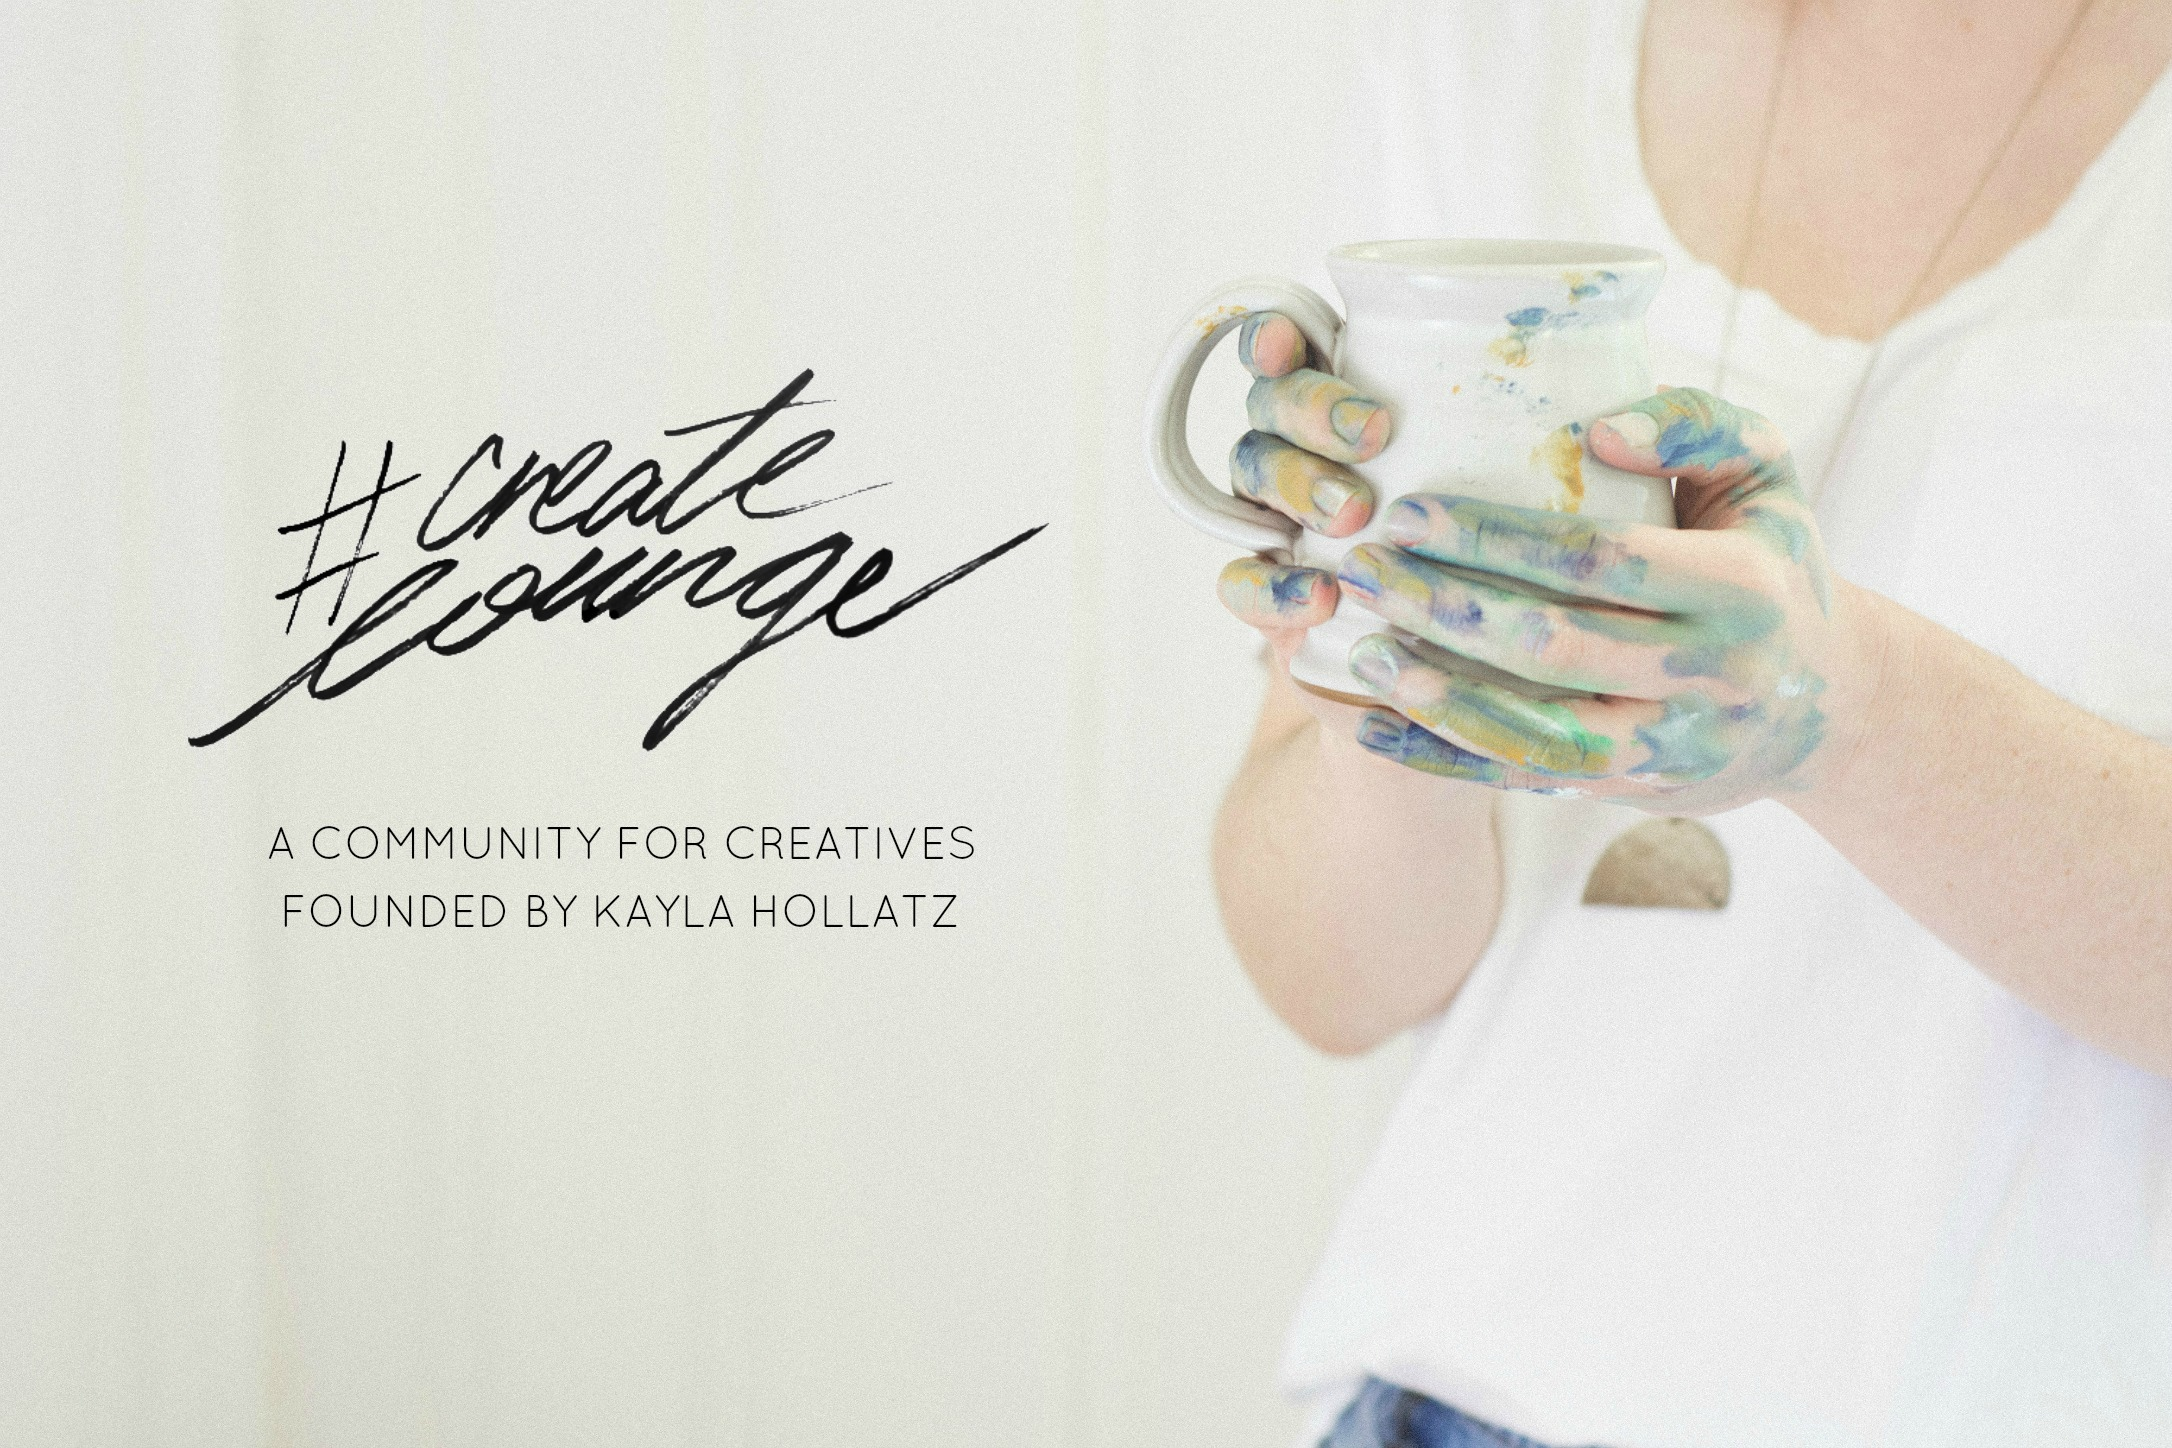 #createlounge: A Community for Creatives